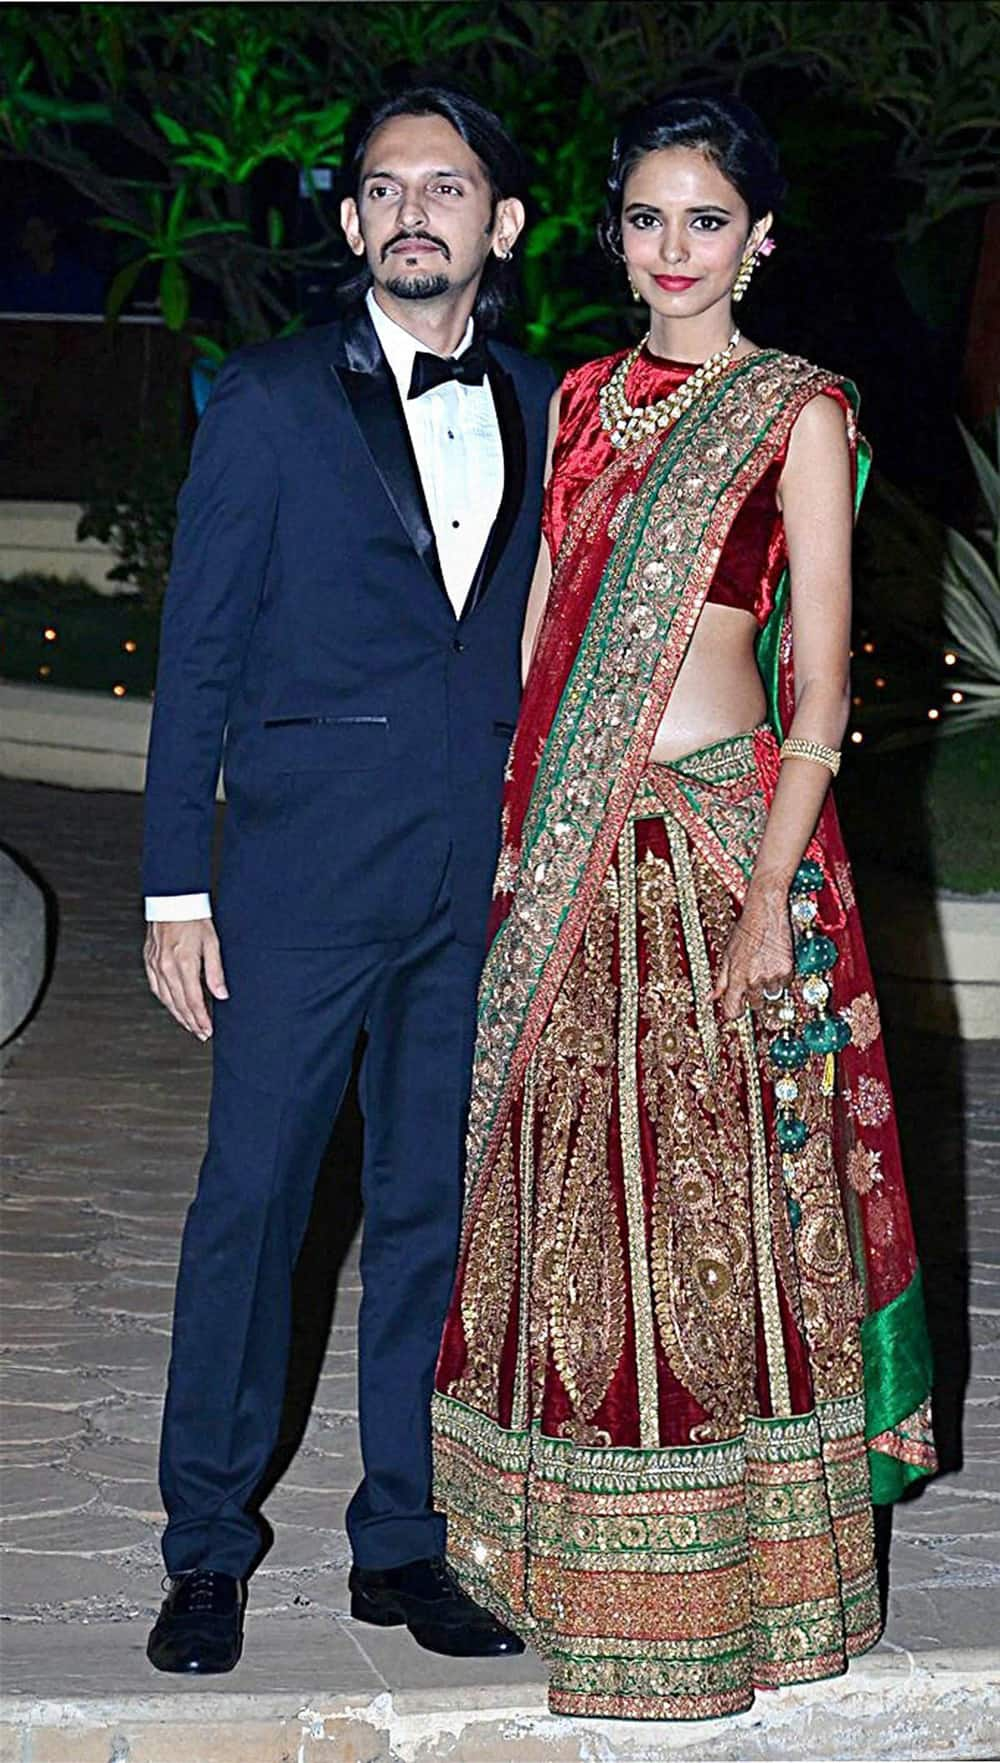 Mahesh Bhatt's son Vishesh Bhatt and his wife during their wedding reception in Mumbai.